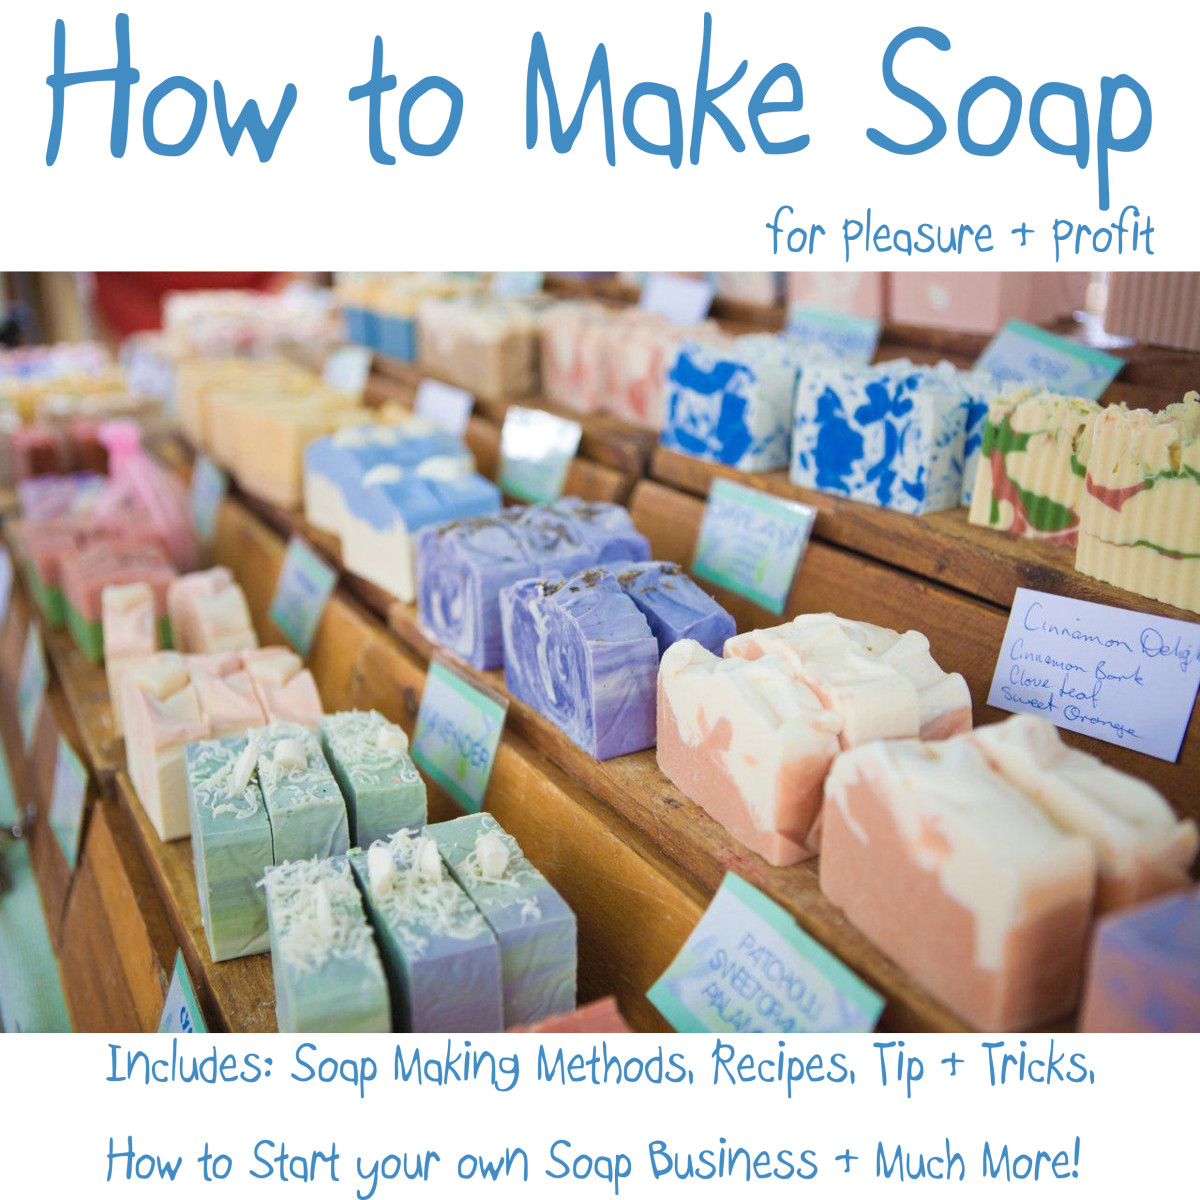 How To Make Your Own Soap | HubPages